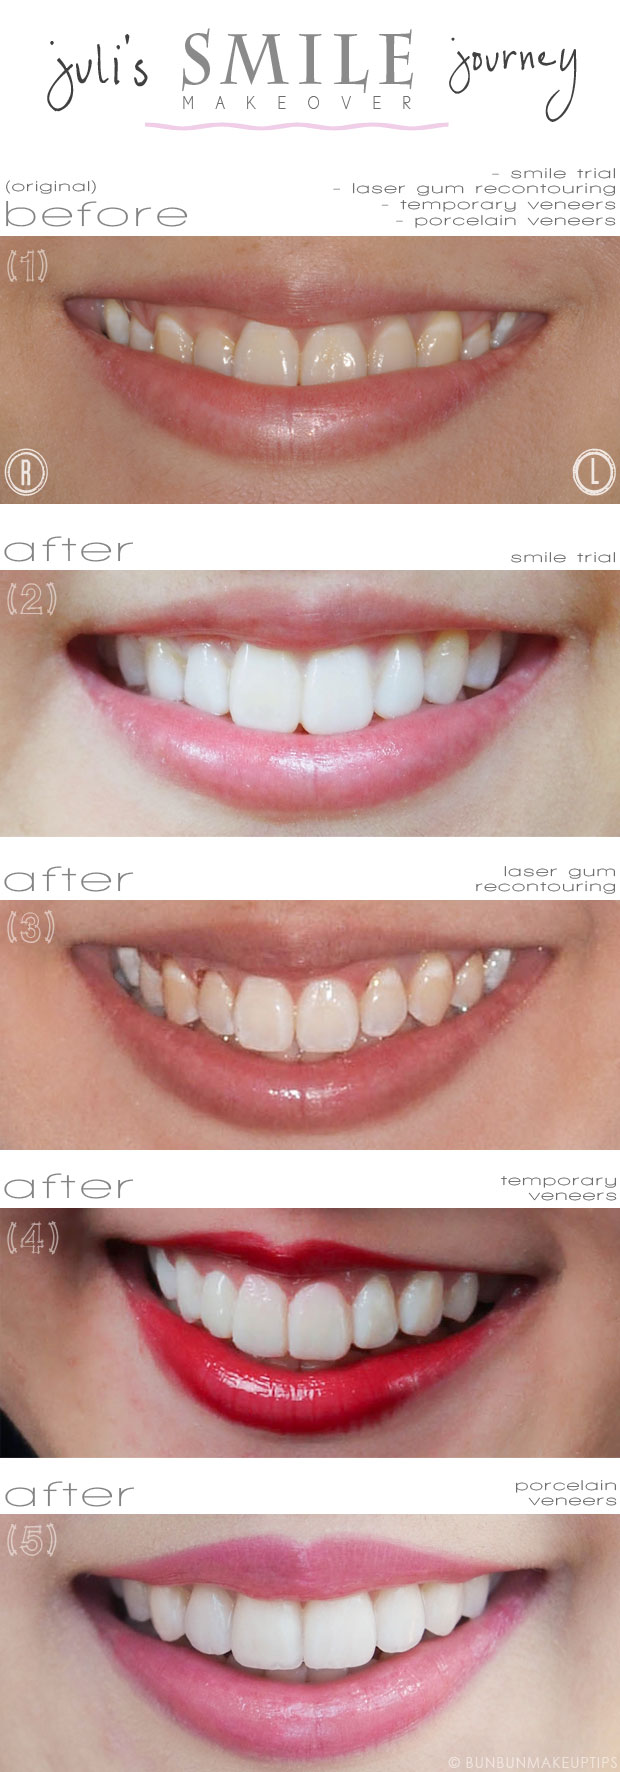 Orchard-Scotts-Dental-Singapore-Review_Final-Porcelain-Veneers_6.2